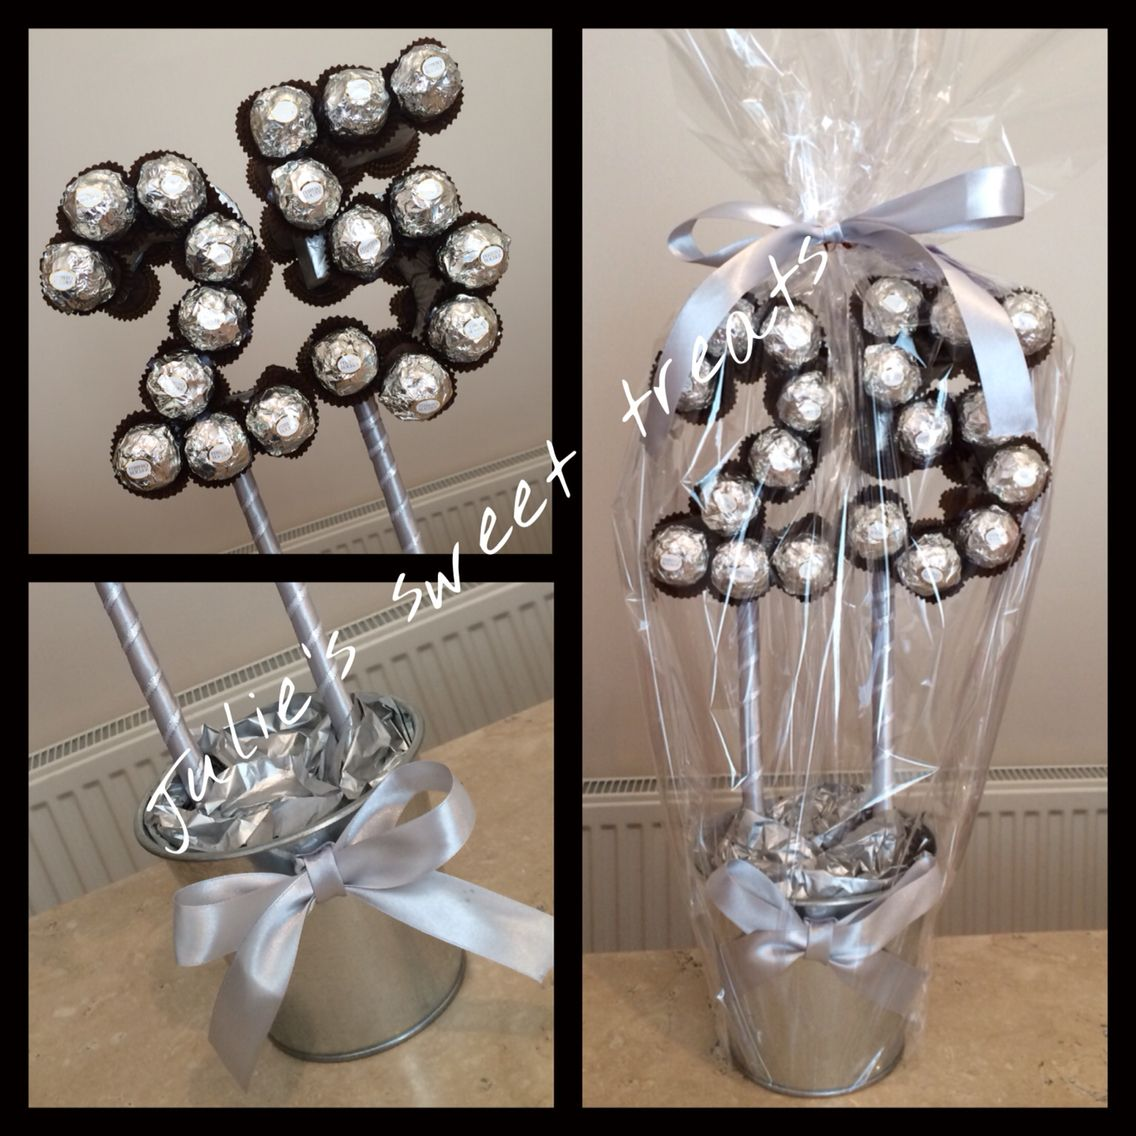 25 Hochzeitstag 25th Silver Wedding Anniversary Sweet Tree Created Using